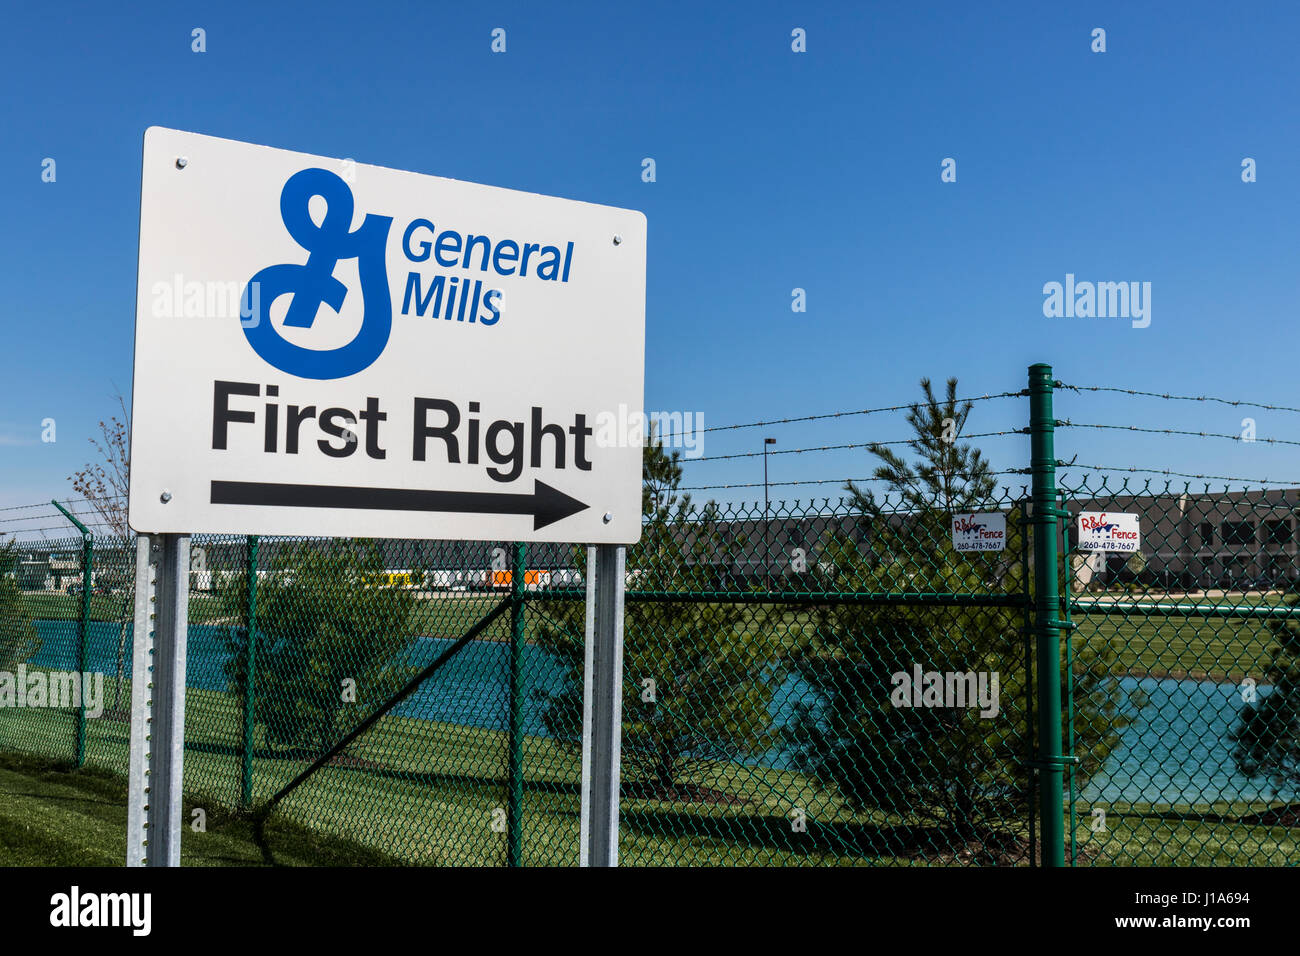 Fort Wayne - Circa April 2017: General Mills Distribution Center Operated by Exel, Inc. II - Stock Image